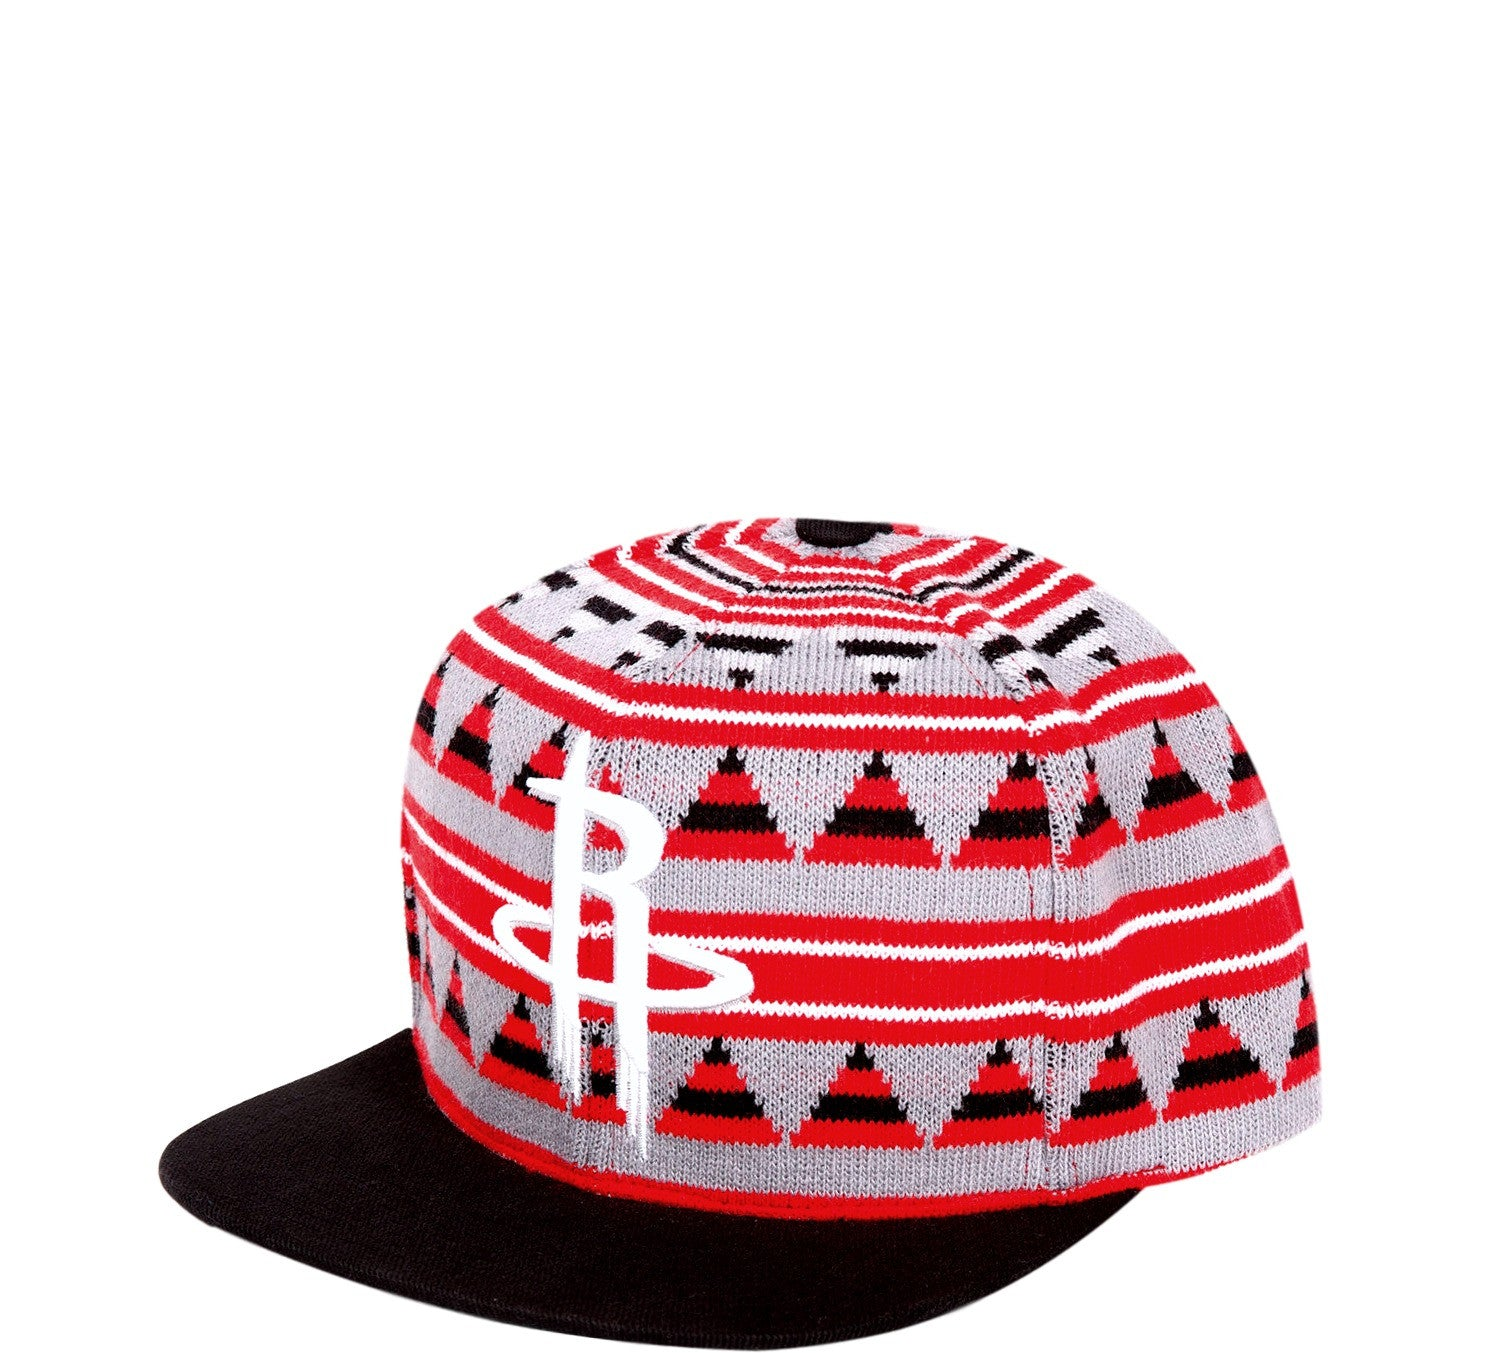 Rockets Retro Snapback Hat